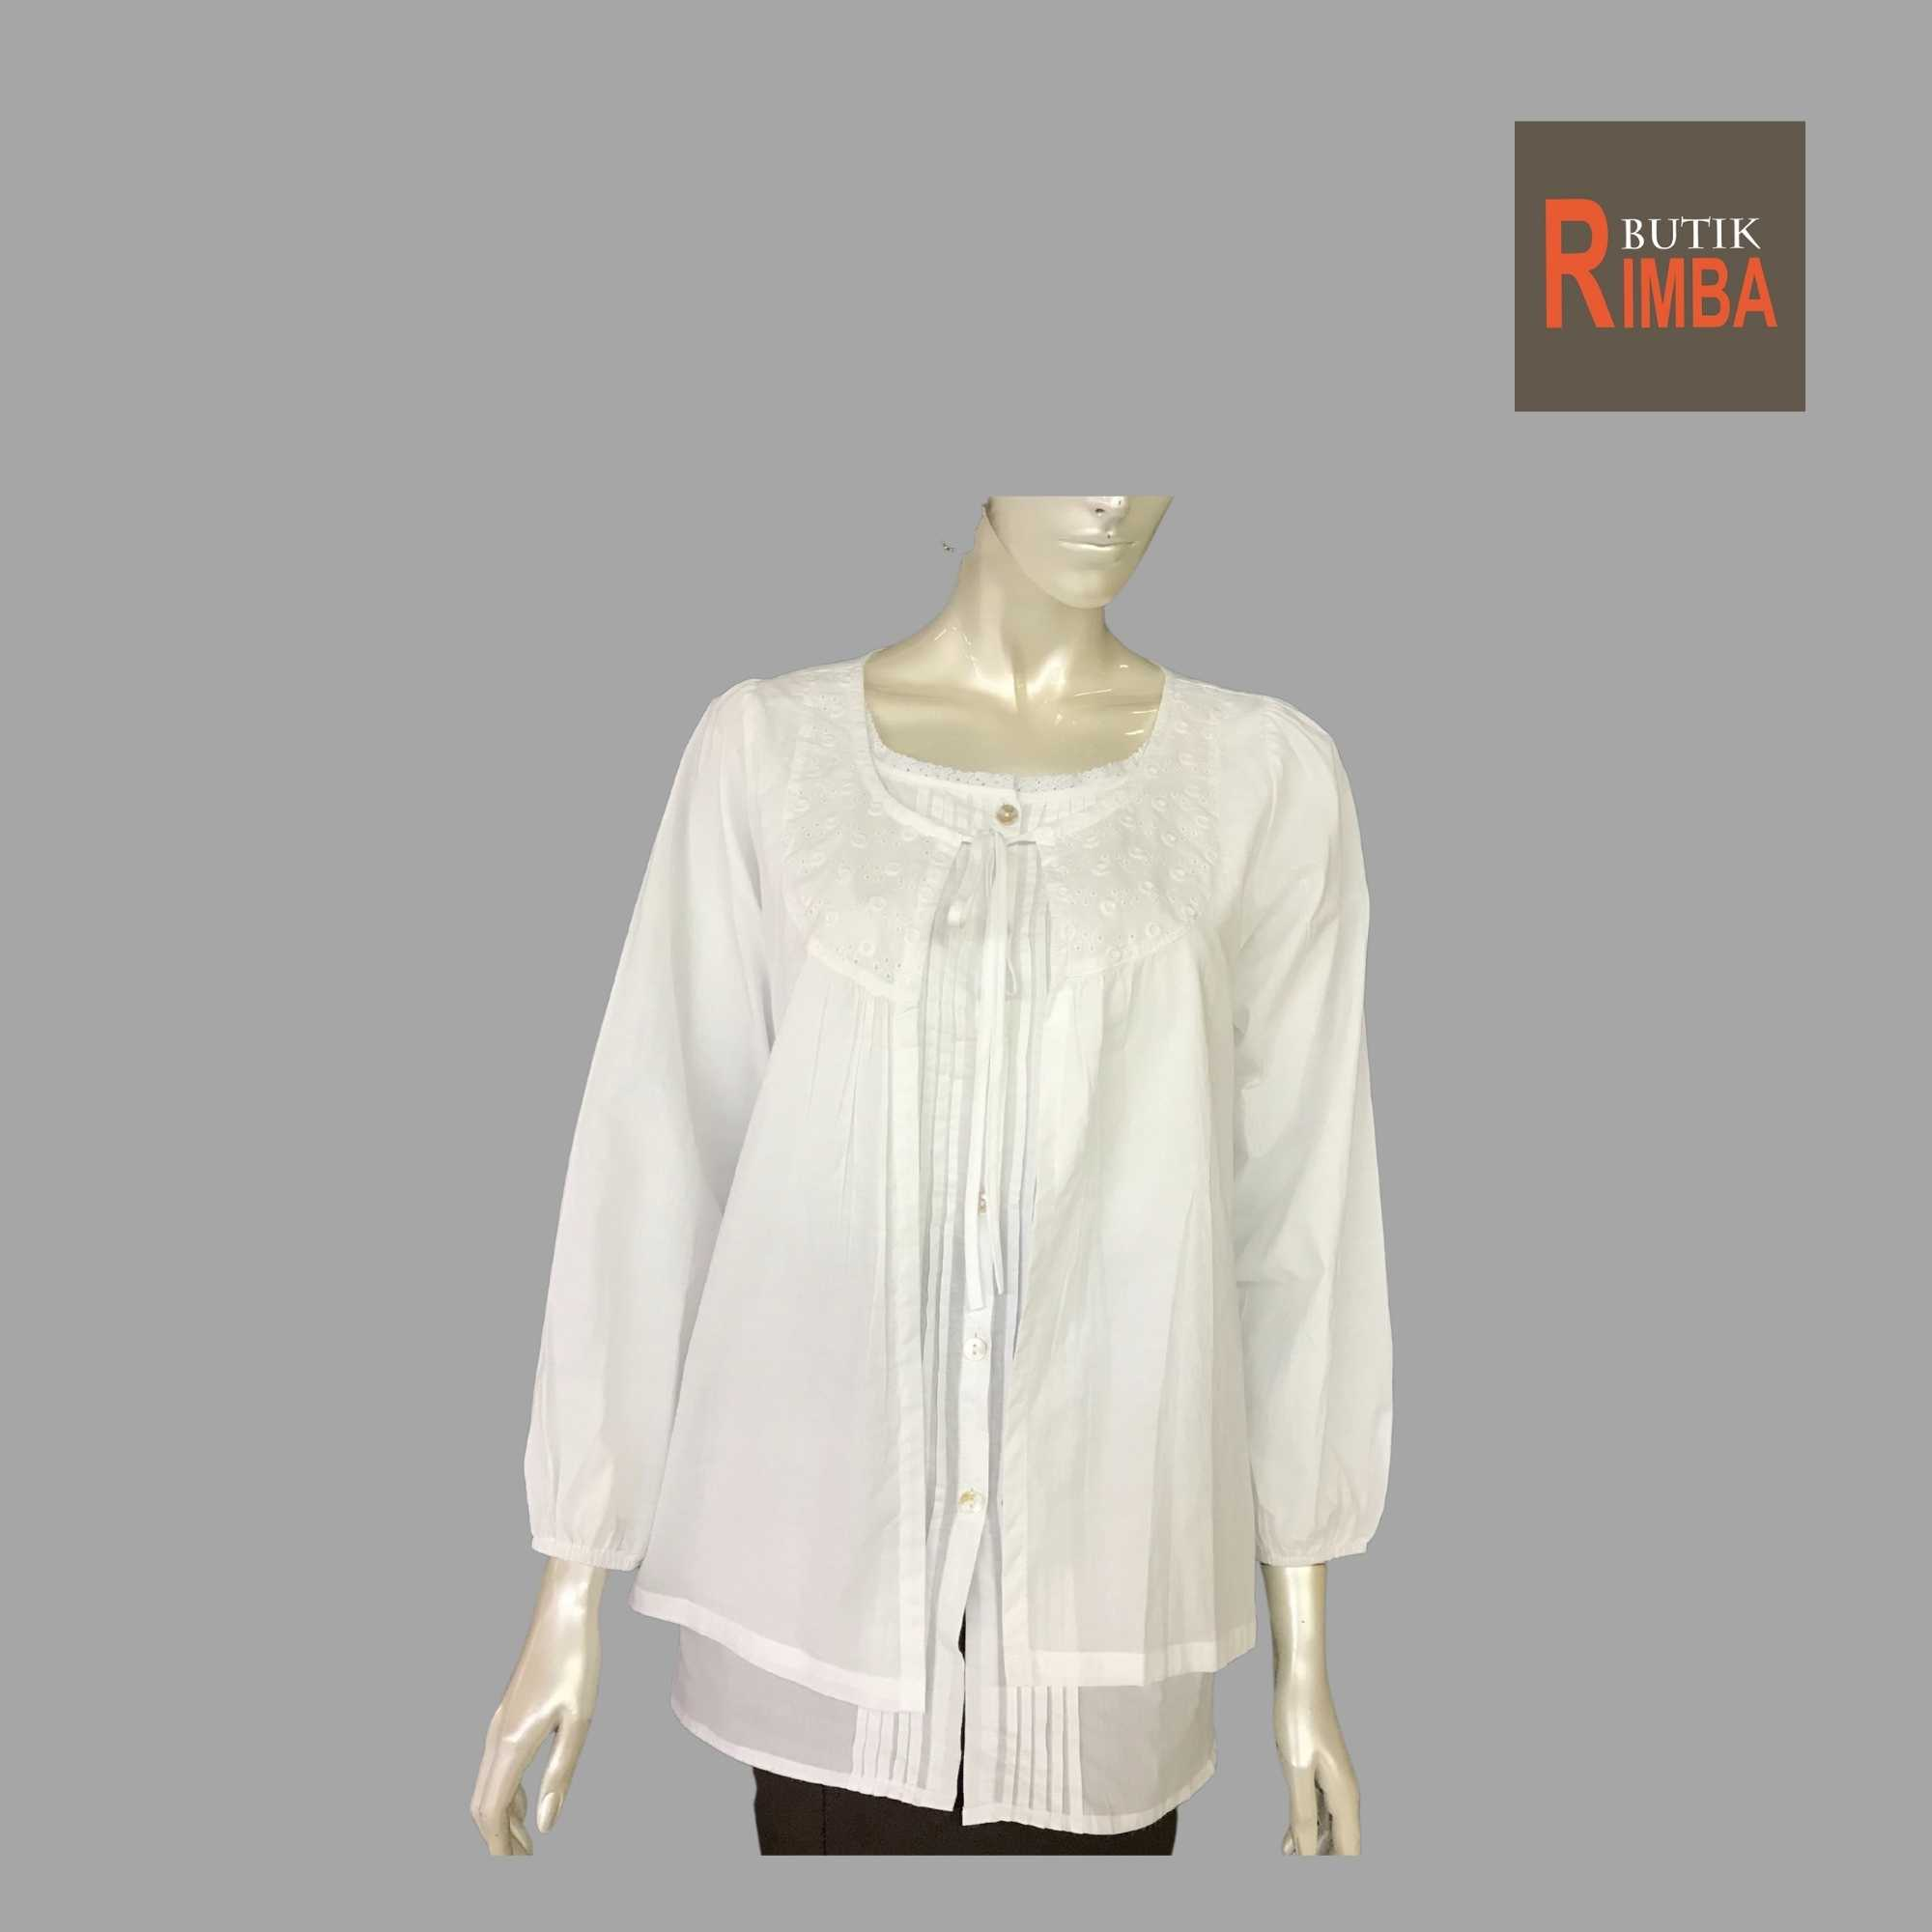 WOMEN CASUAL AND COMFORTABLE WHITE BLOUSE COTTON FREE SIZE PATTERN 22